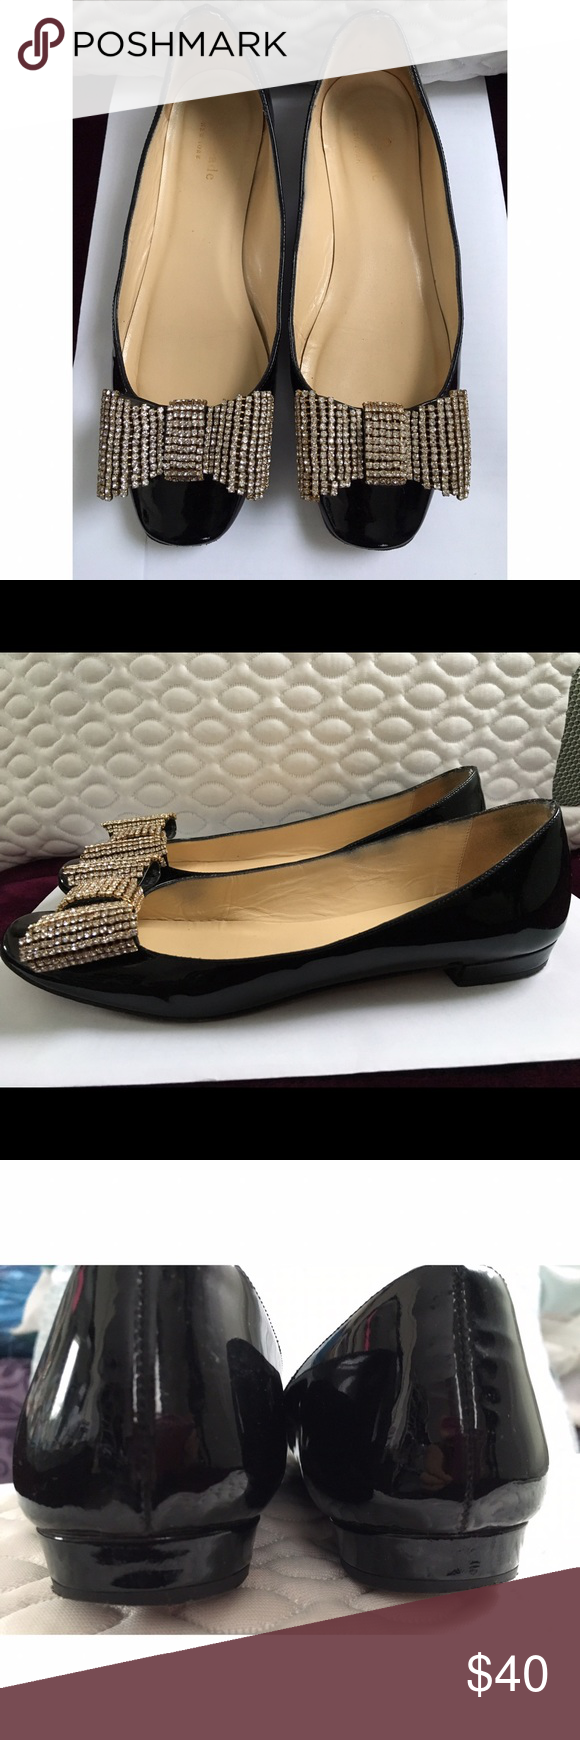 KATE SPADE, Black Shoes. Preowned Kate Spade Black Shoes. Size 6. kate spade Shoes Flats & Loafers